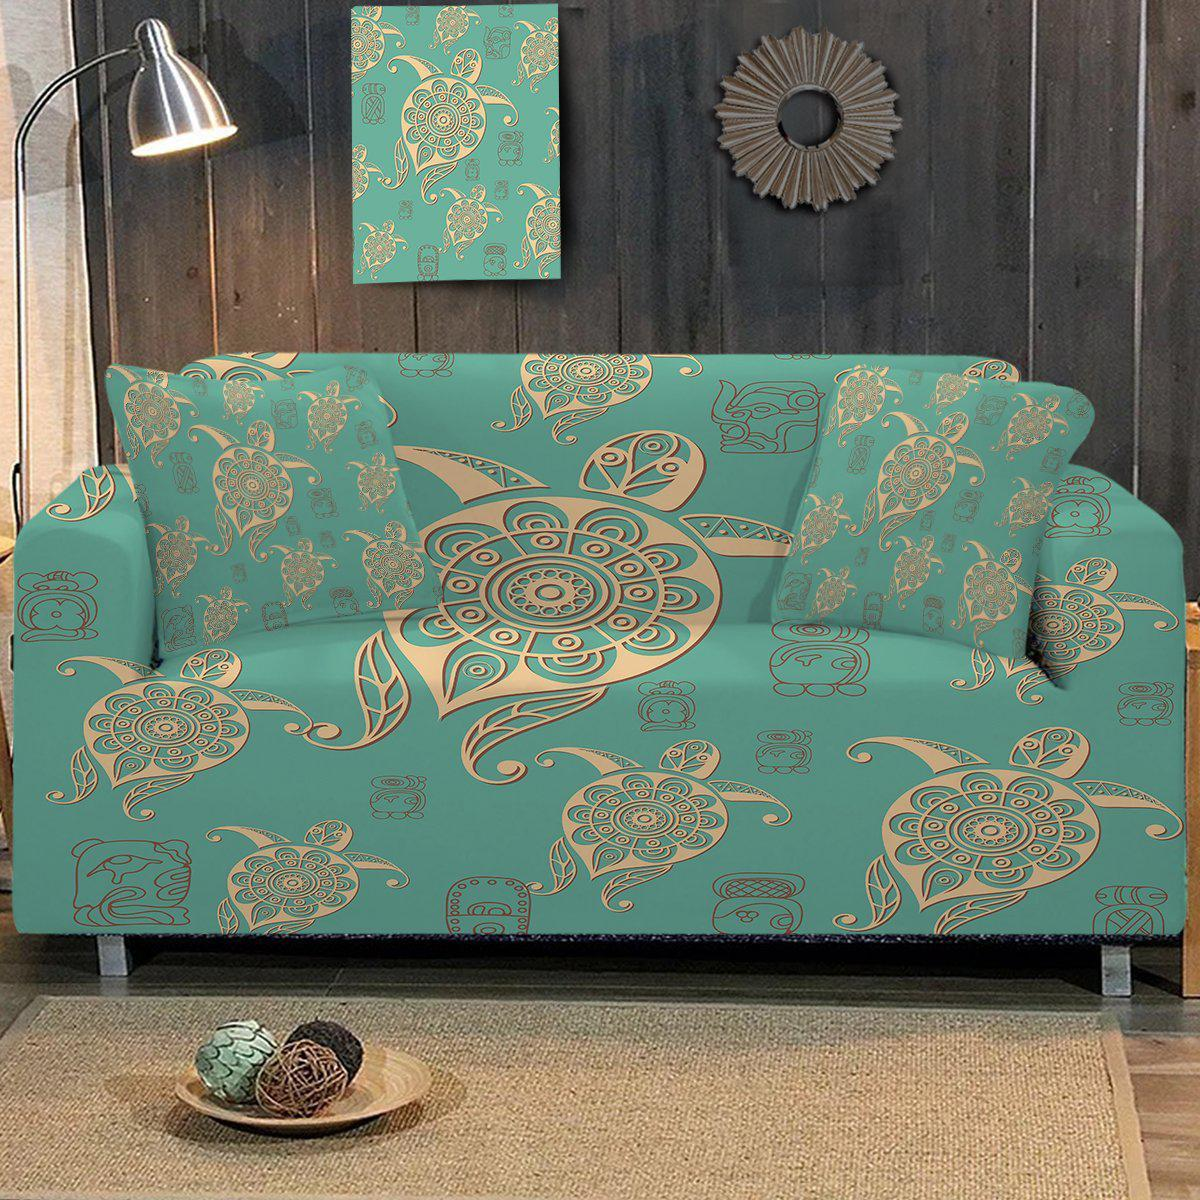 Sofa Slipcover-Turtles in Turquoise Couch Cover-Coastal Passion